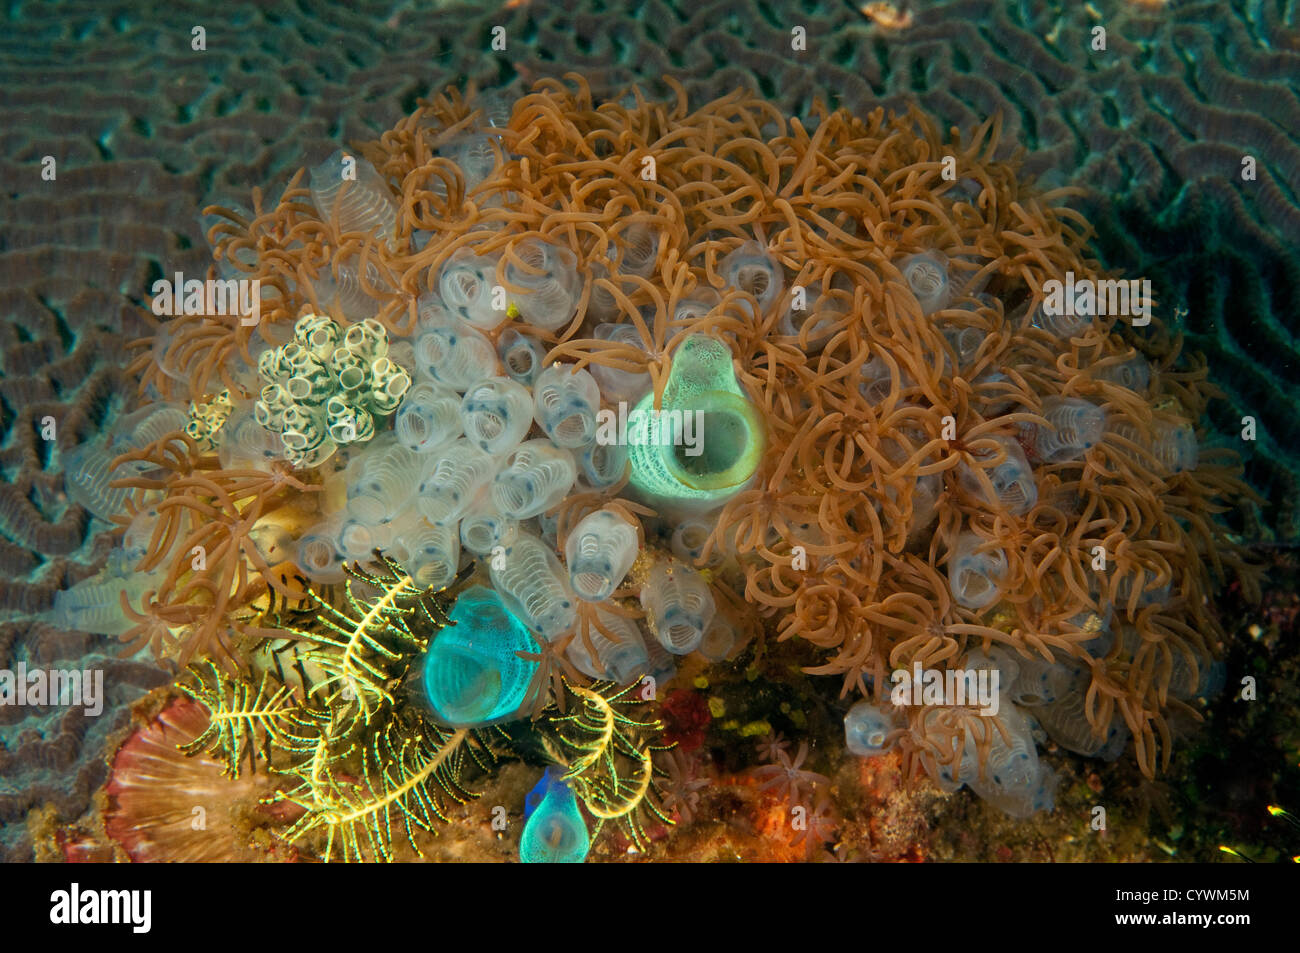 Cluster of ascidians Nusa Kode Island Indonesia - Stock Image